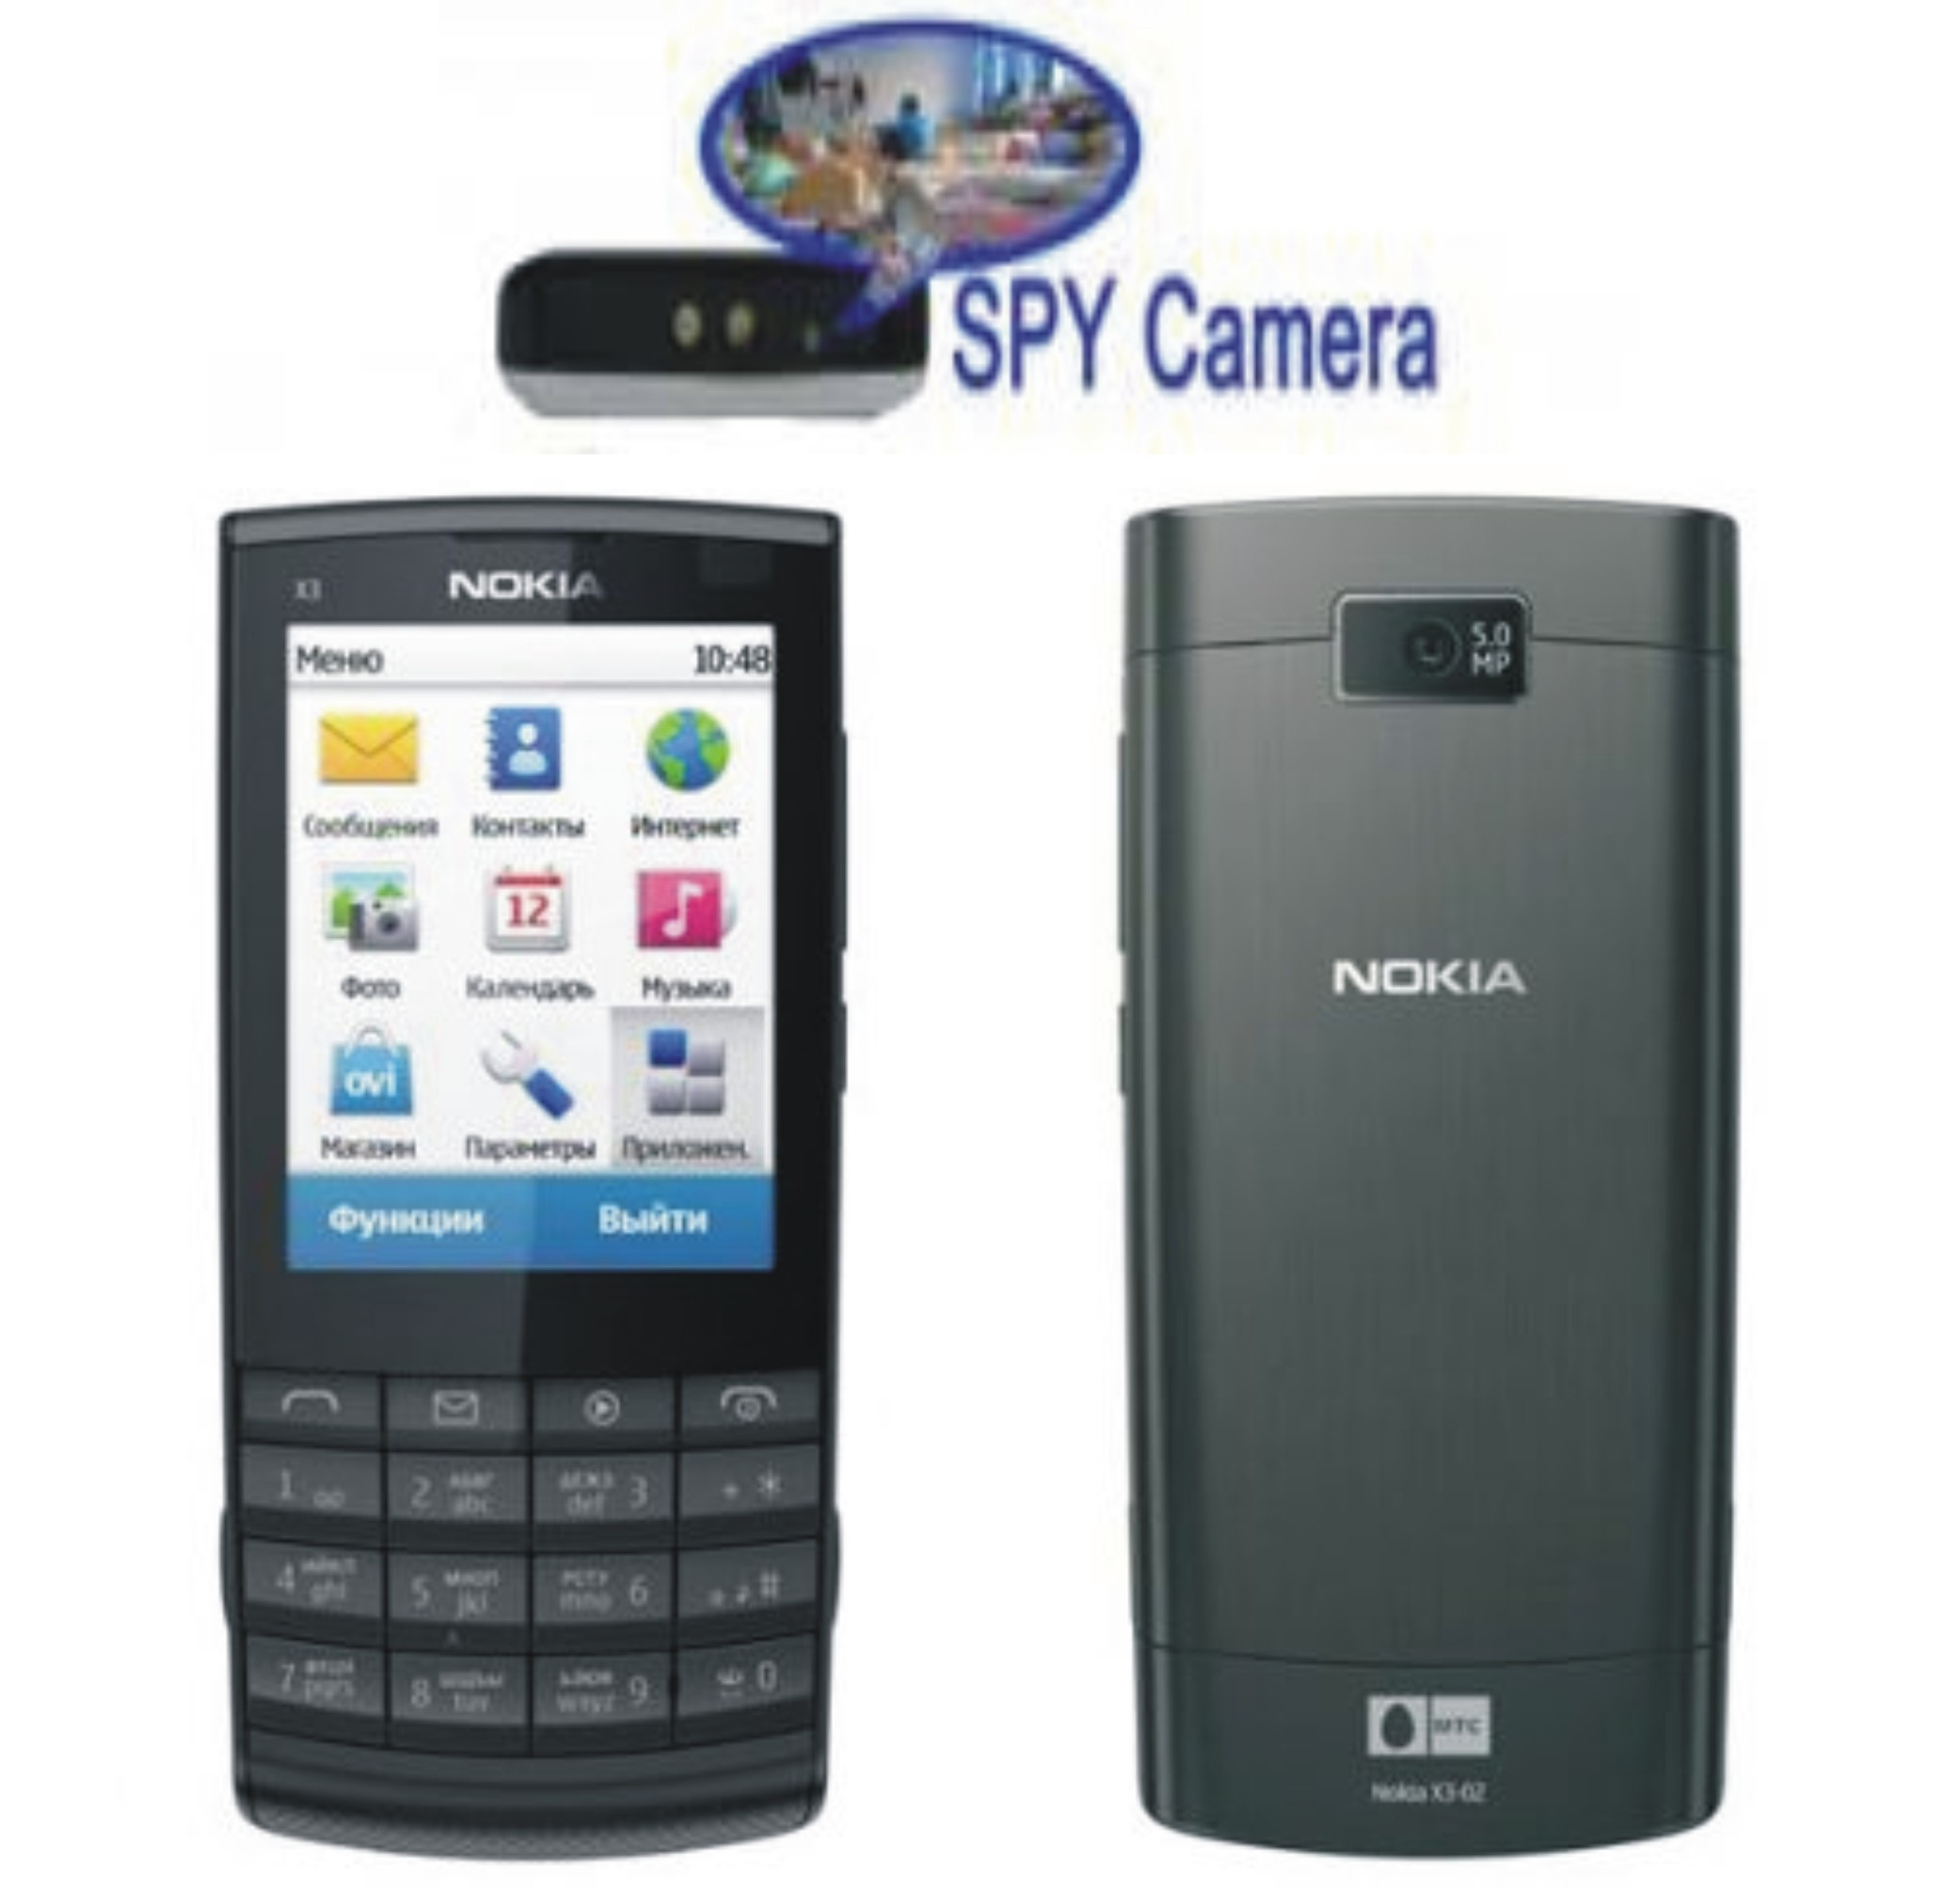 Spy Camera In Nokia Phone Touch Screen In Adilabad